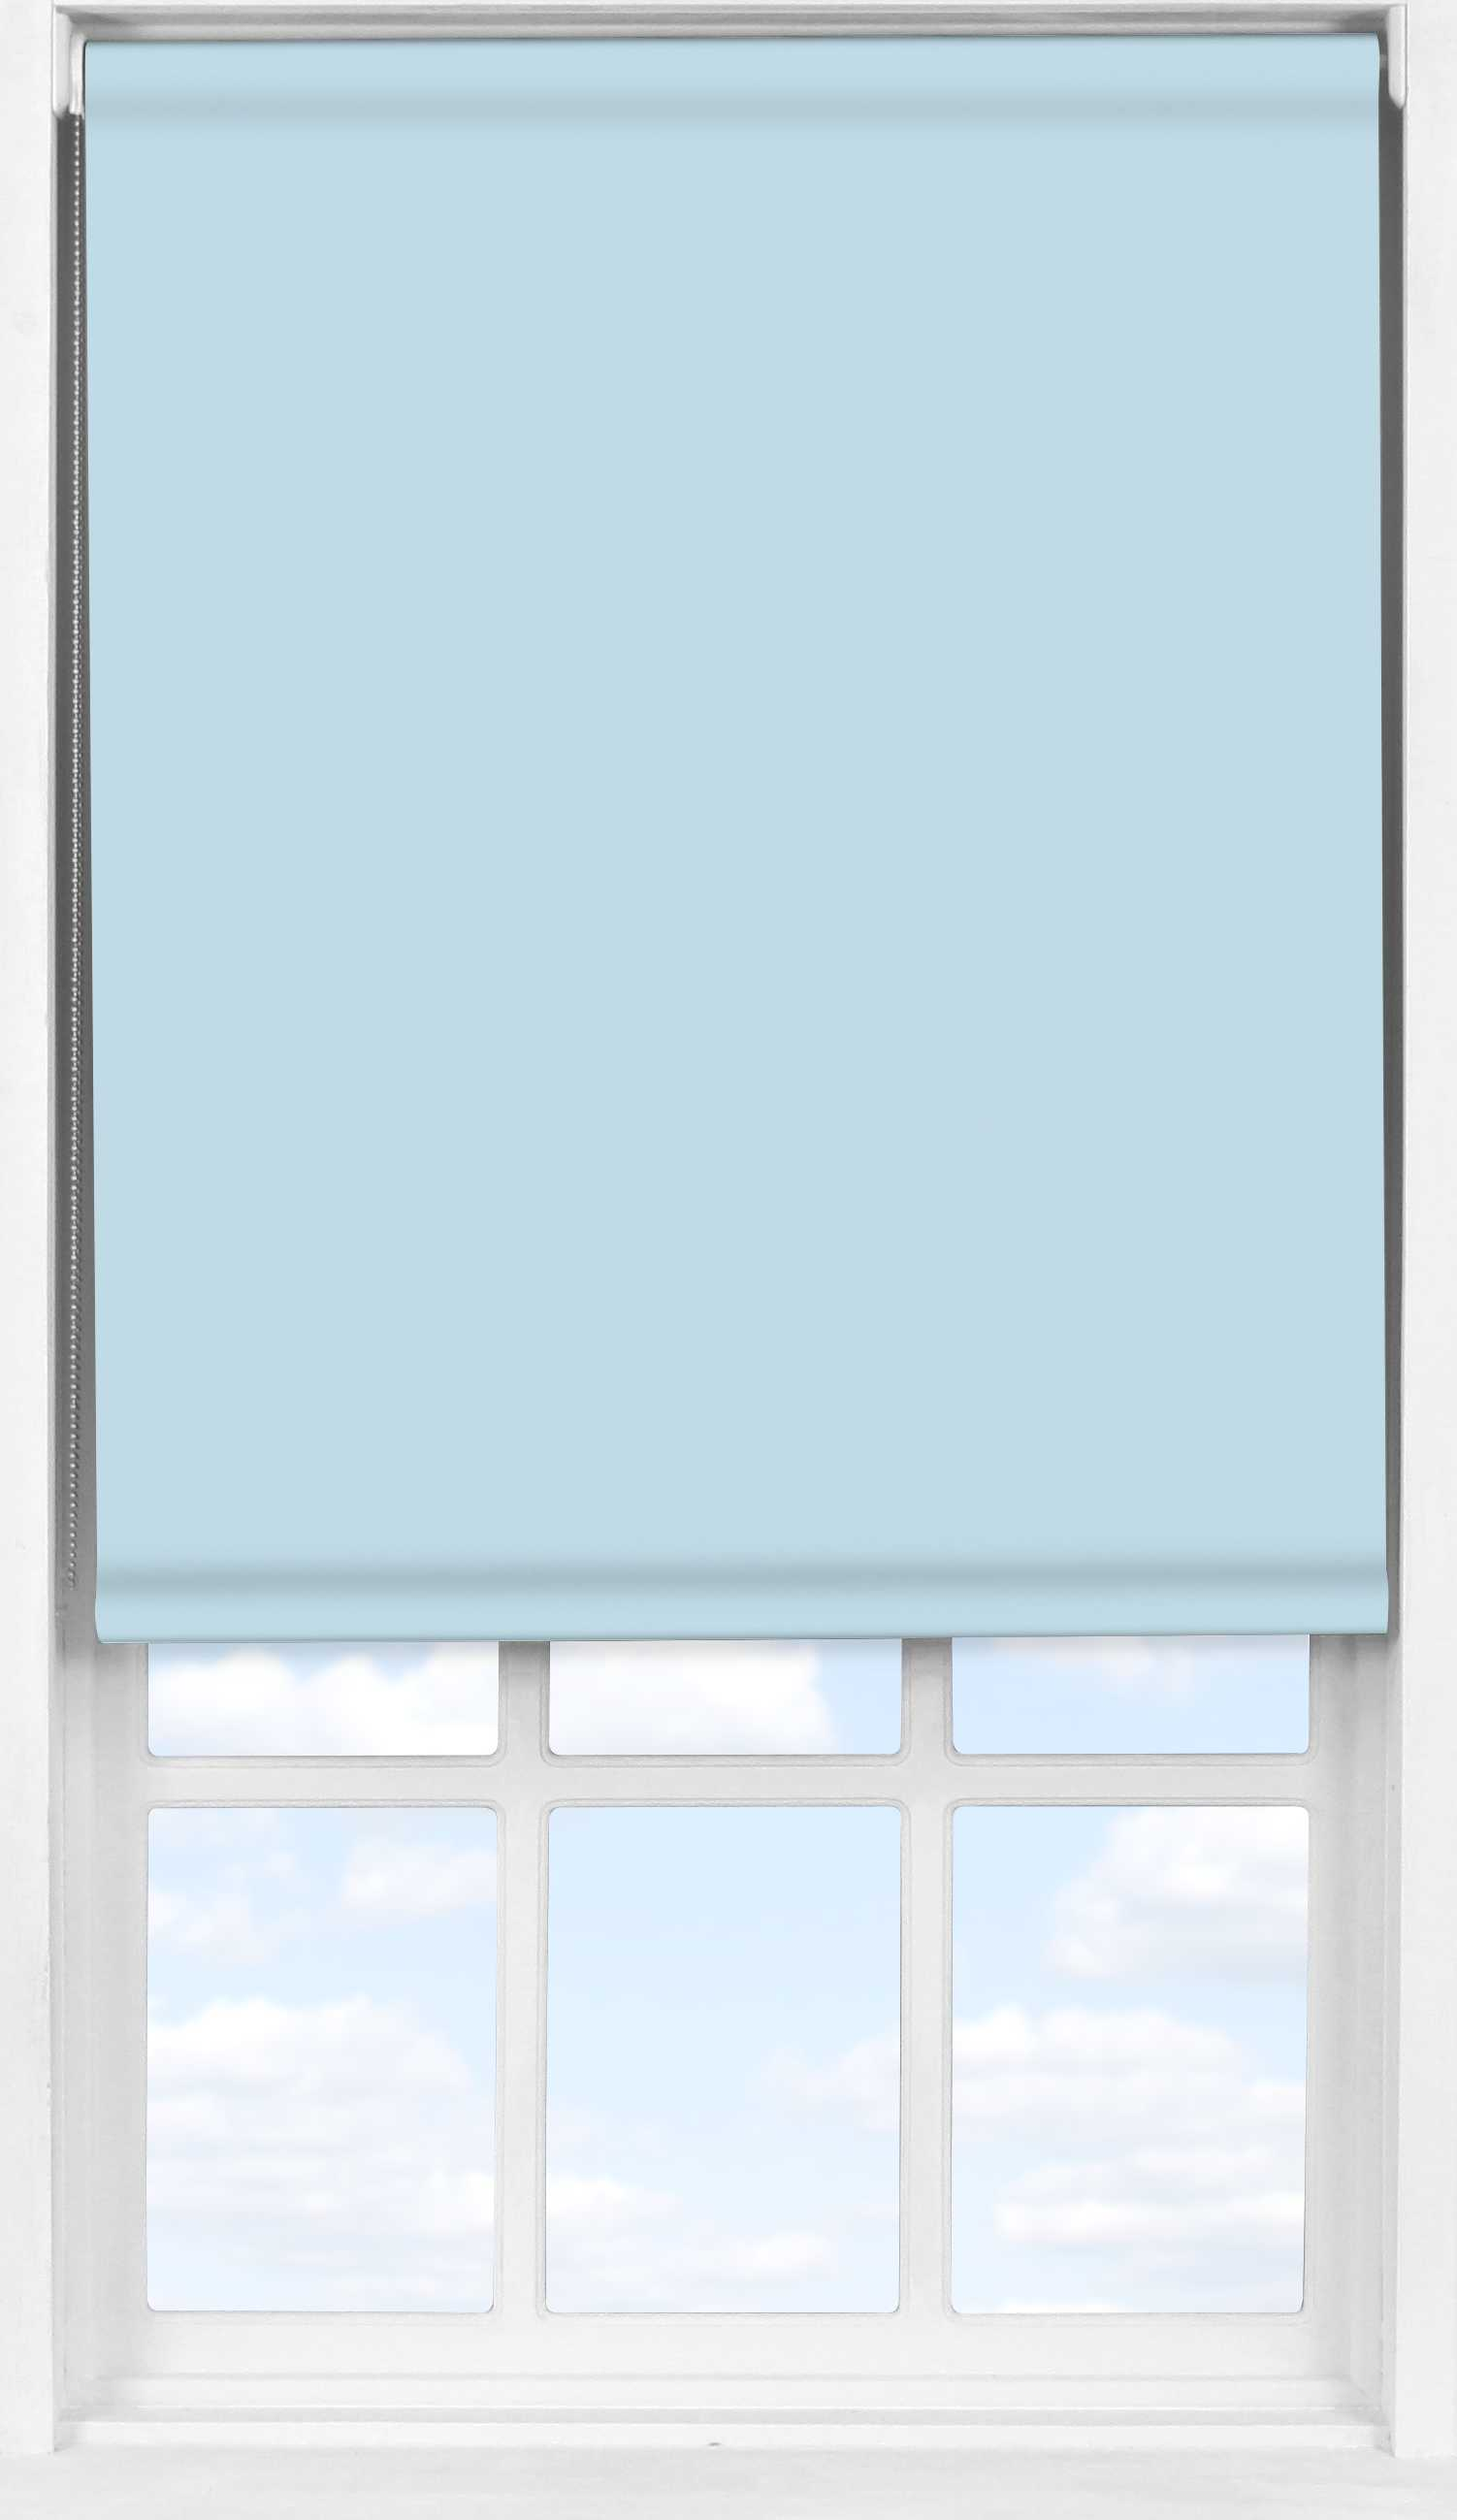 Easifit Roller Blind in Smokey Blue Translucent